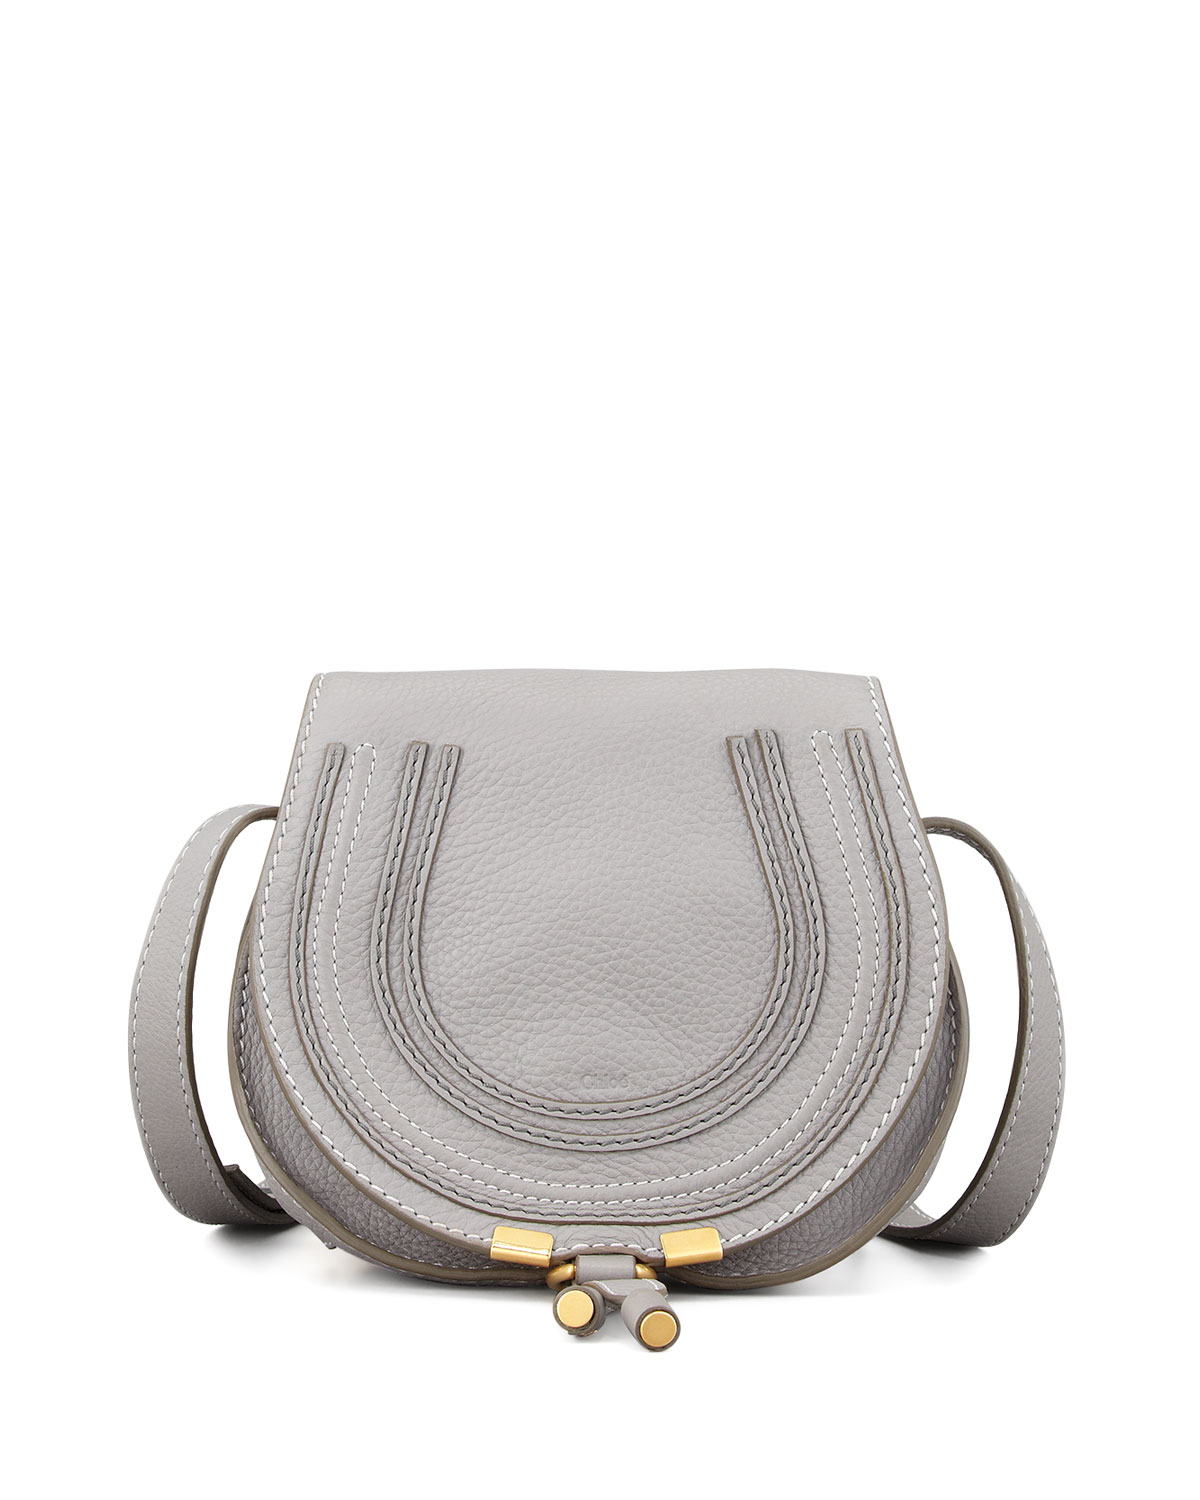 replica chloe handbag - Chlo�� Marcie Mini Leather Cross-Body Bag in Gray (GREY) | Lyst